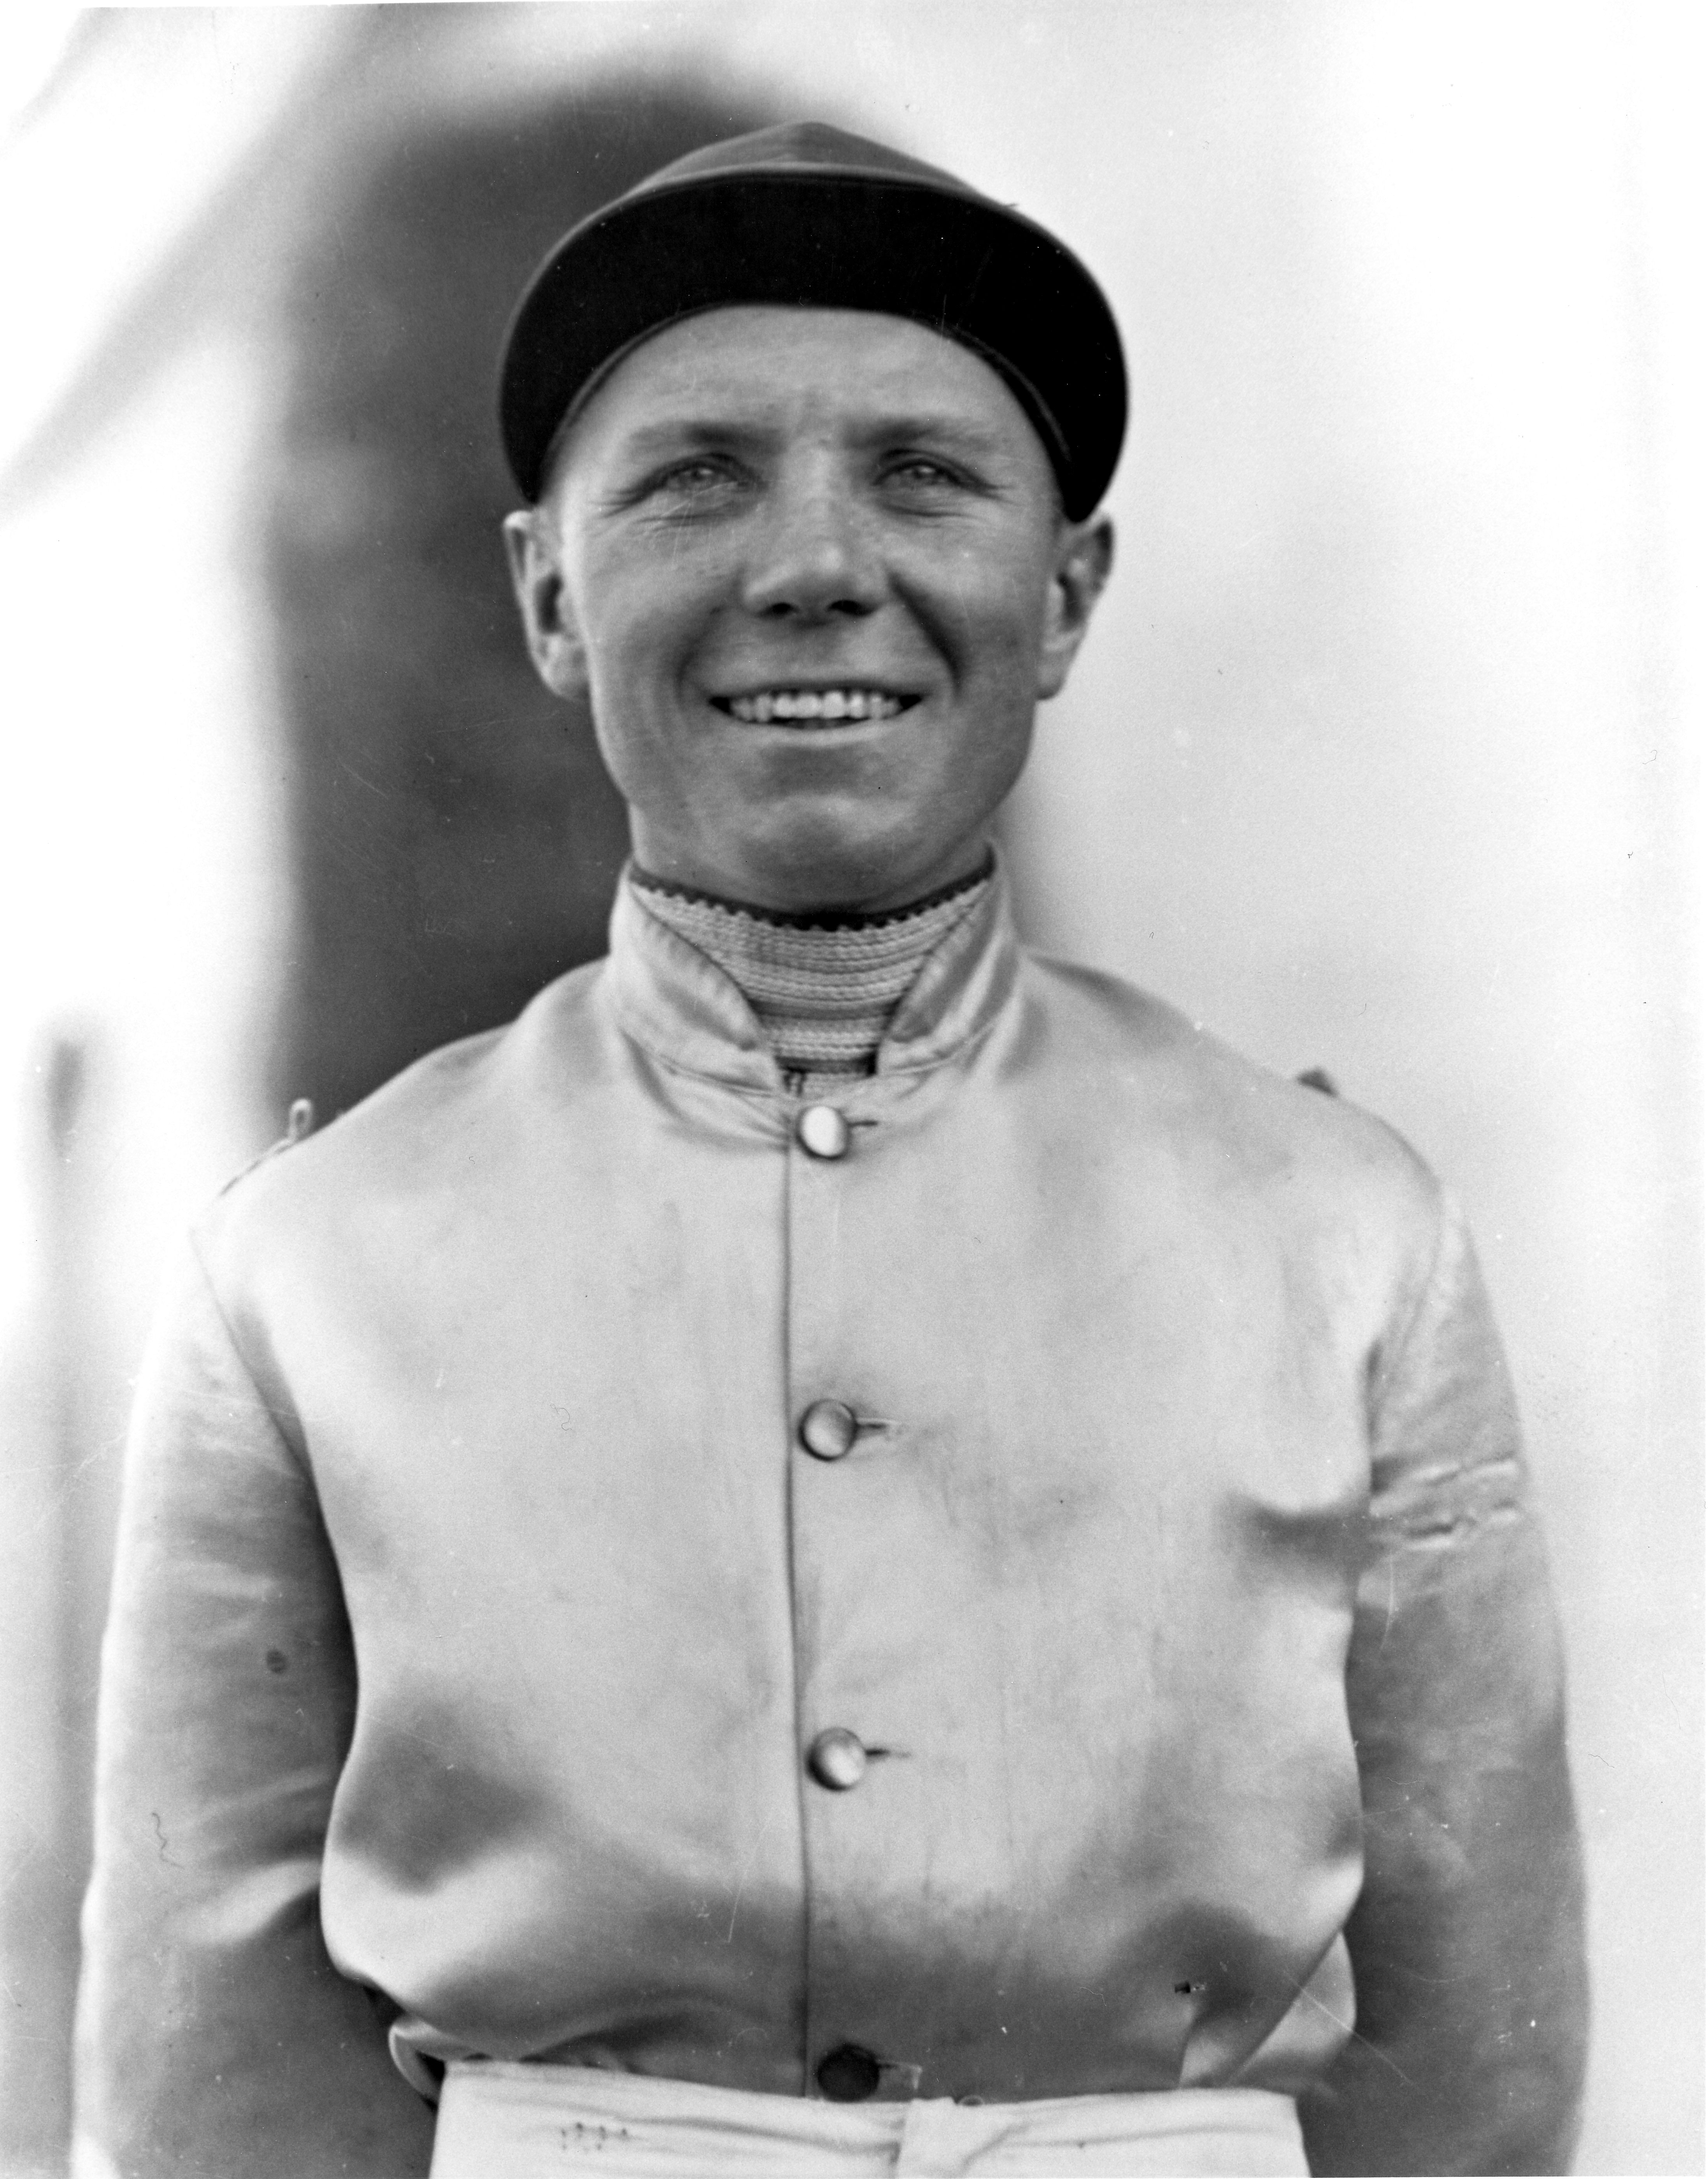 Raymond Workman (Keeneland Library Cook Collection)